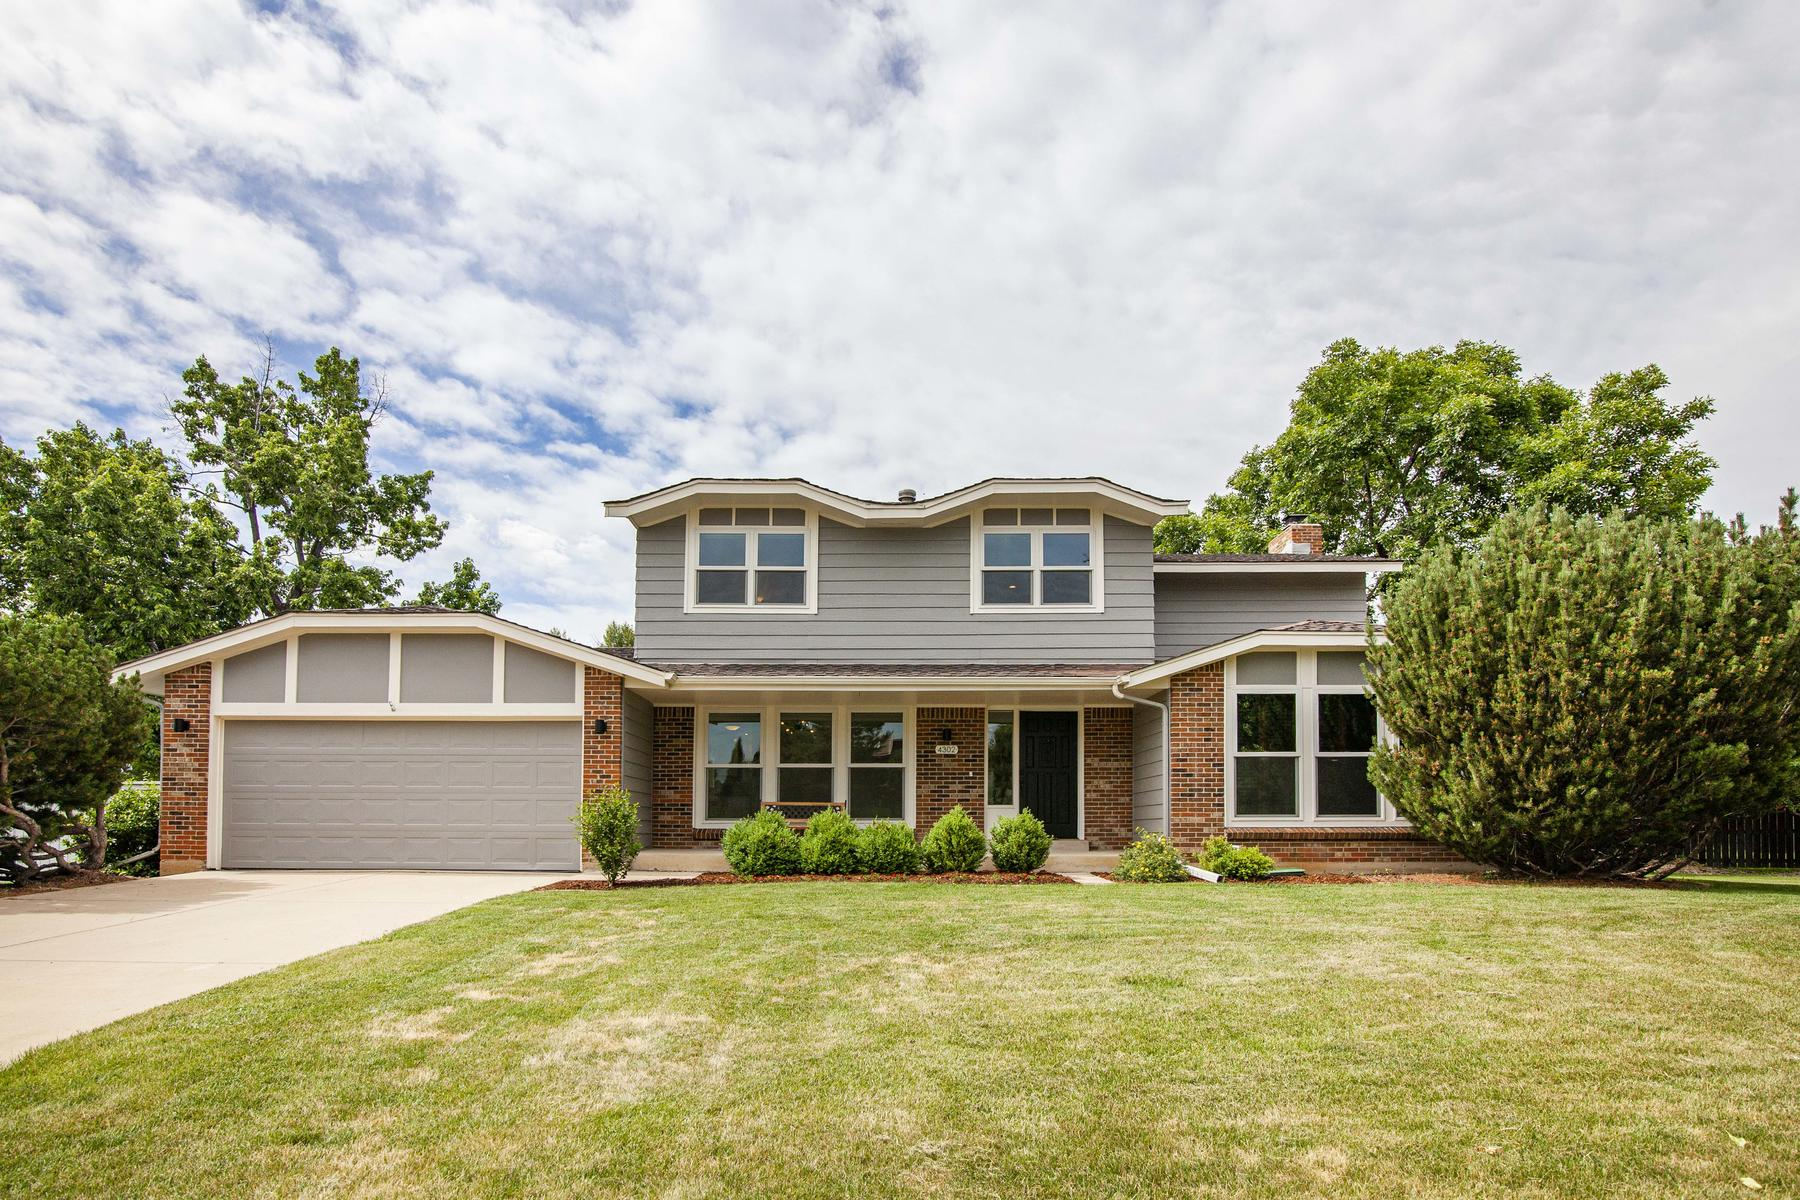 Single Family Homes for Sale at Beautiful And Spacious Remodeled Orange Orchard Gem 4302 Apple Wy, Boulder, Colorado 80301 United States